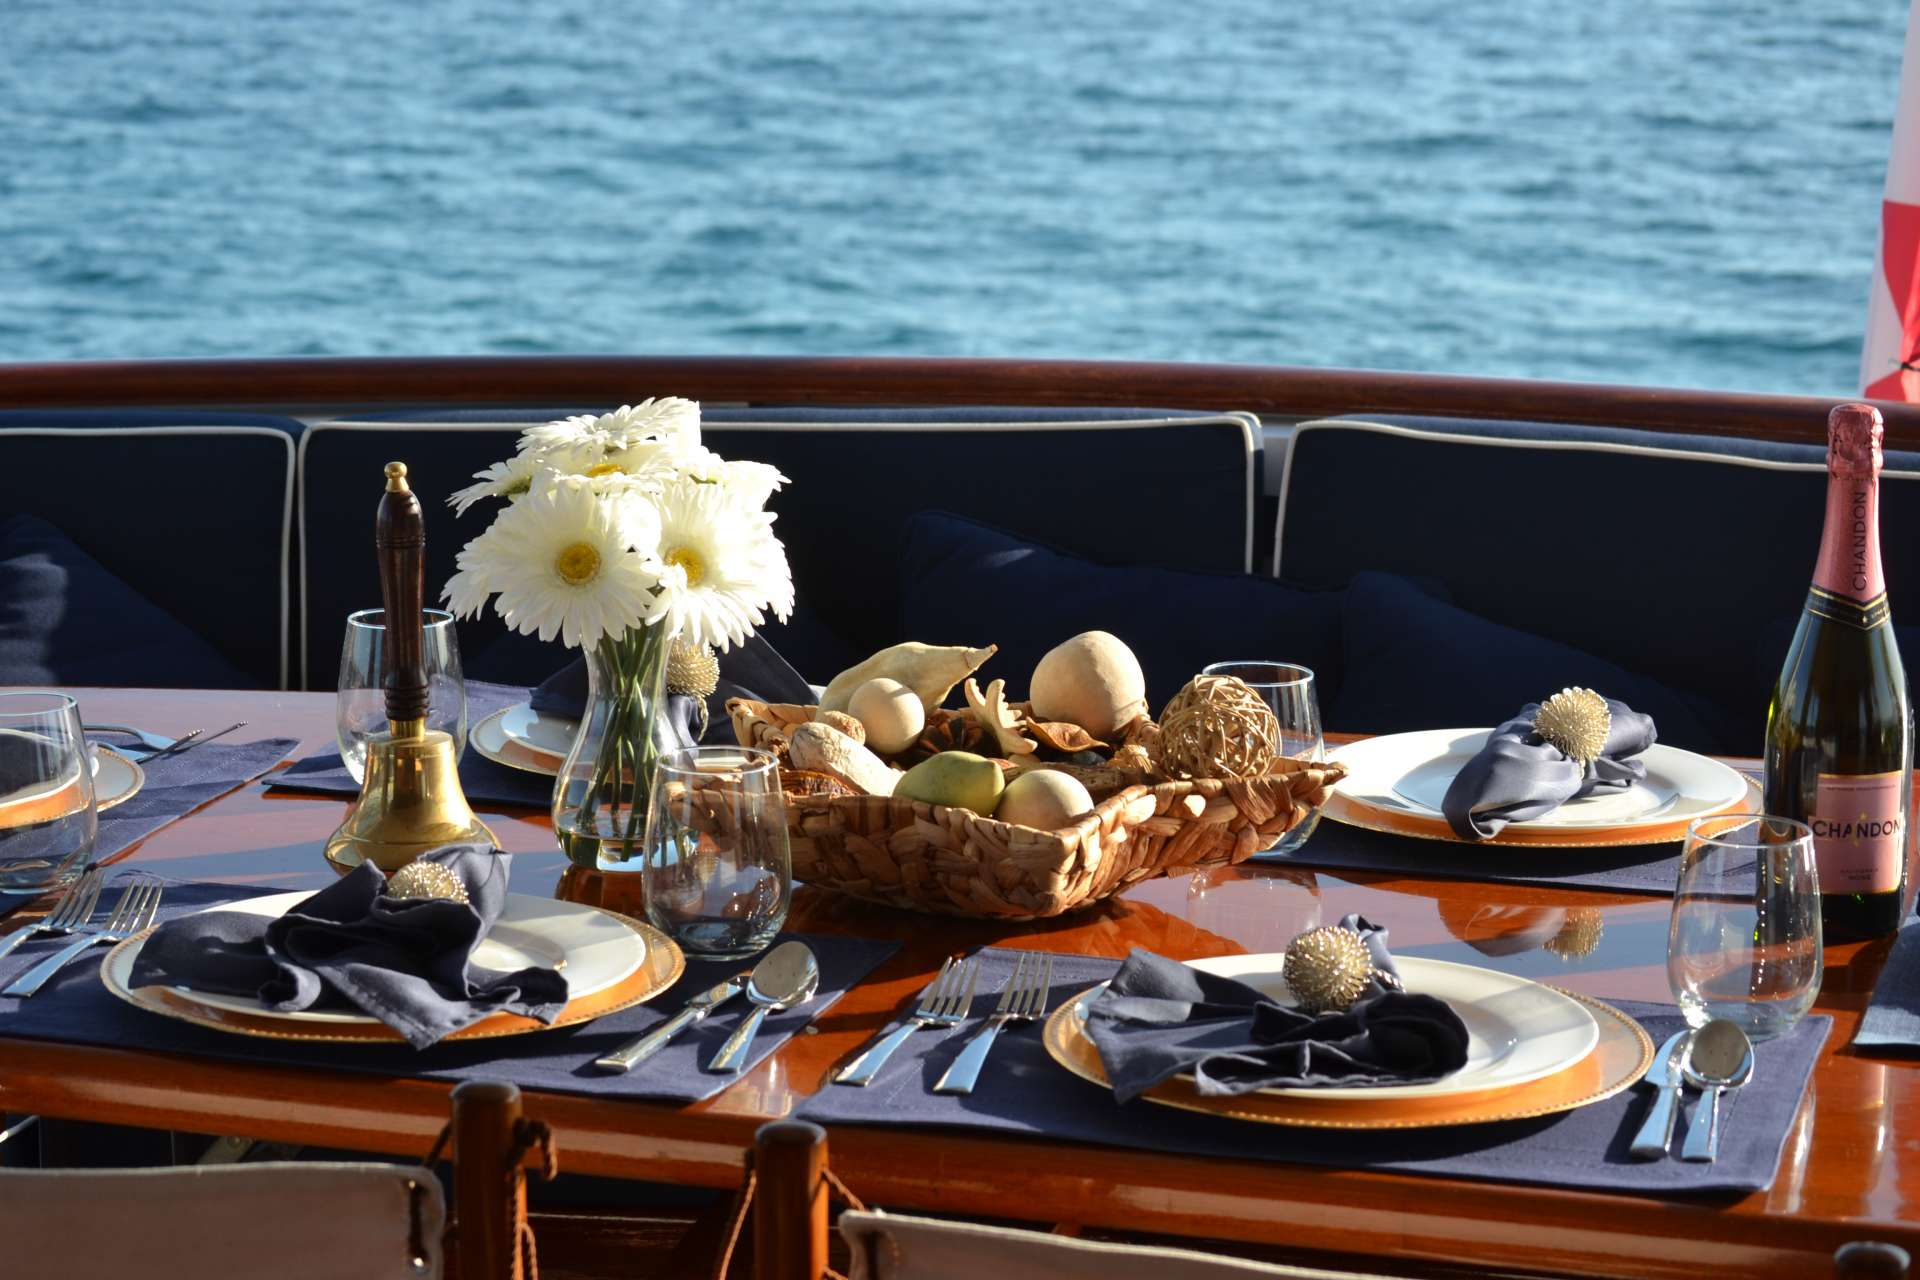 aft deck dinner table set up